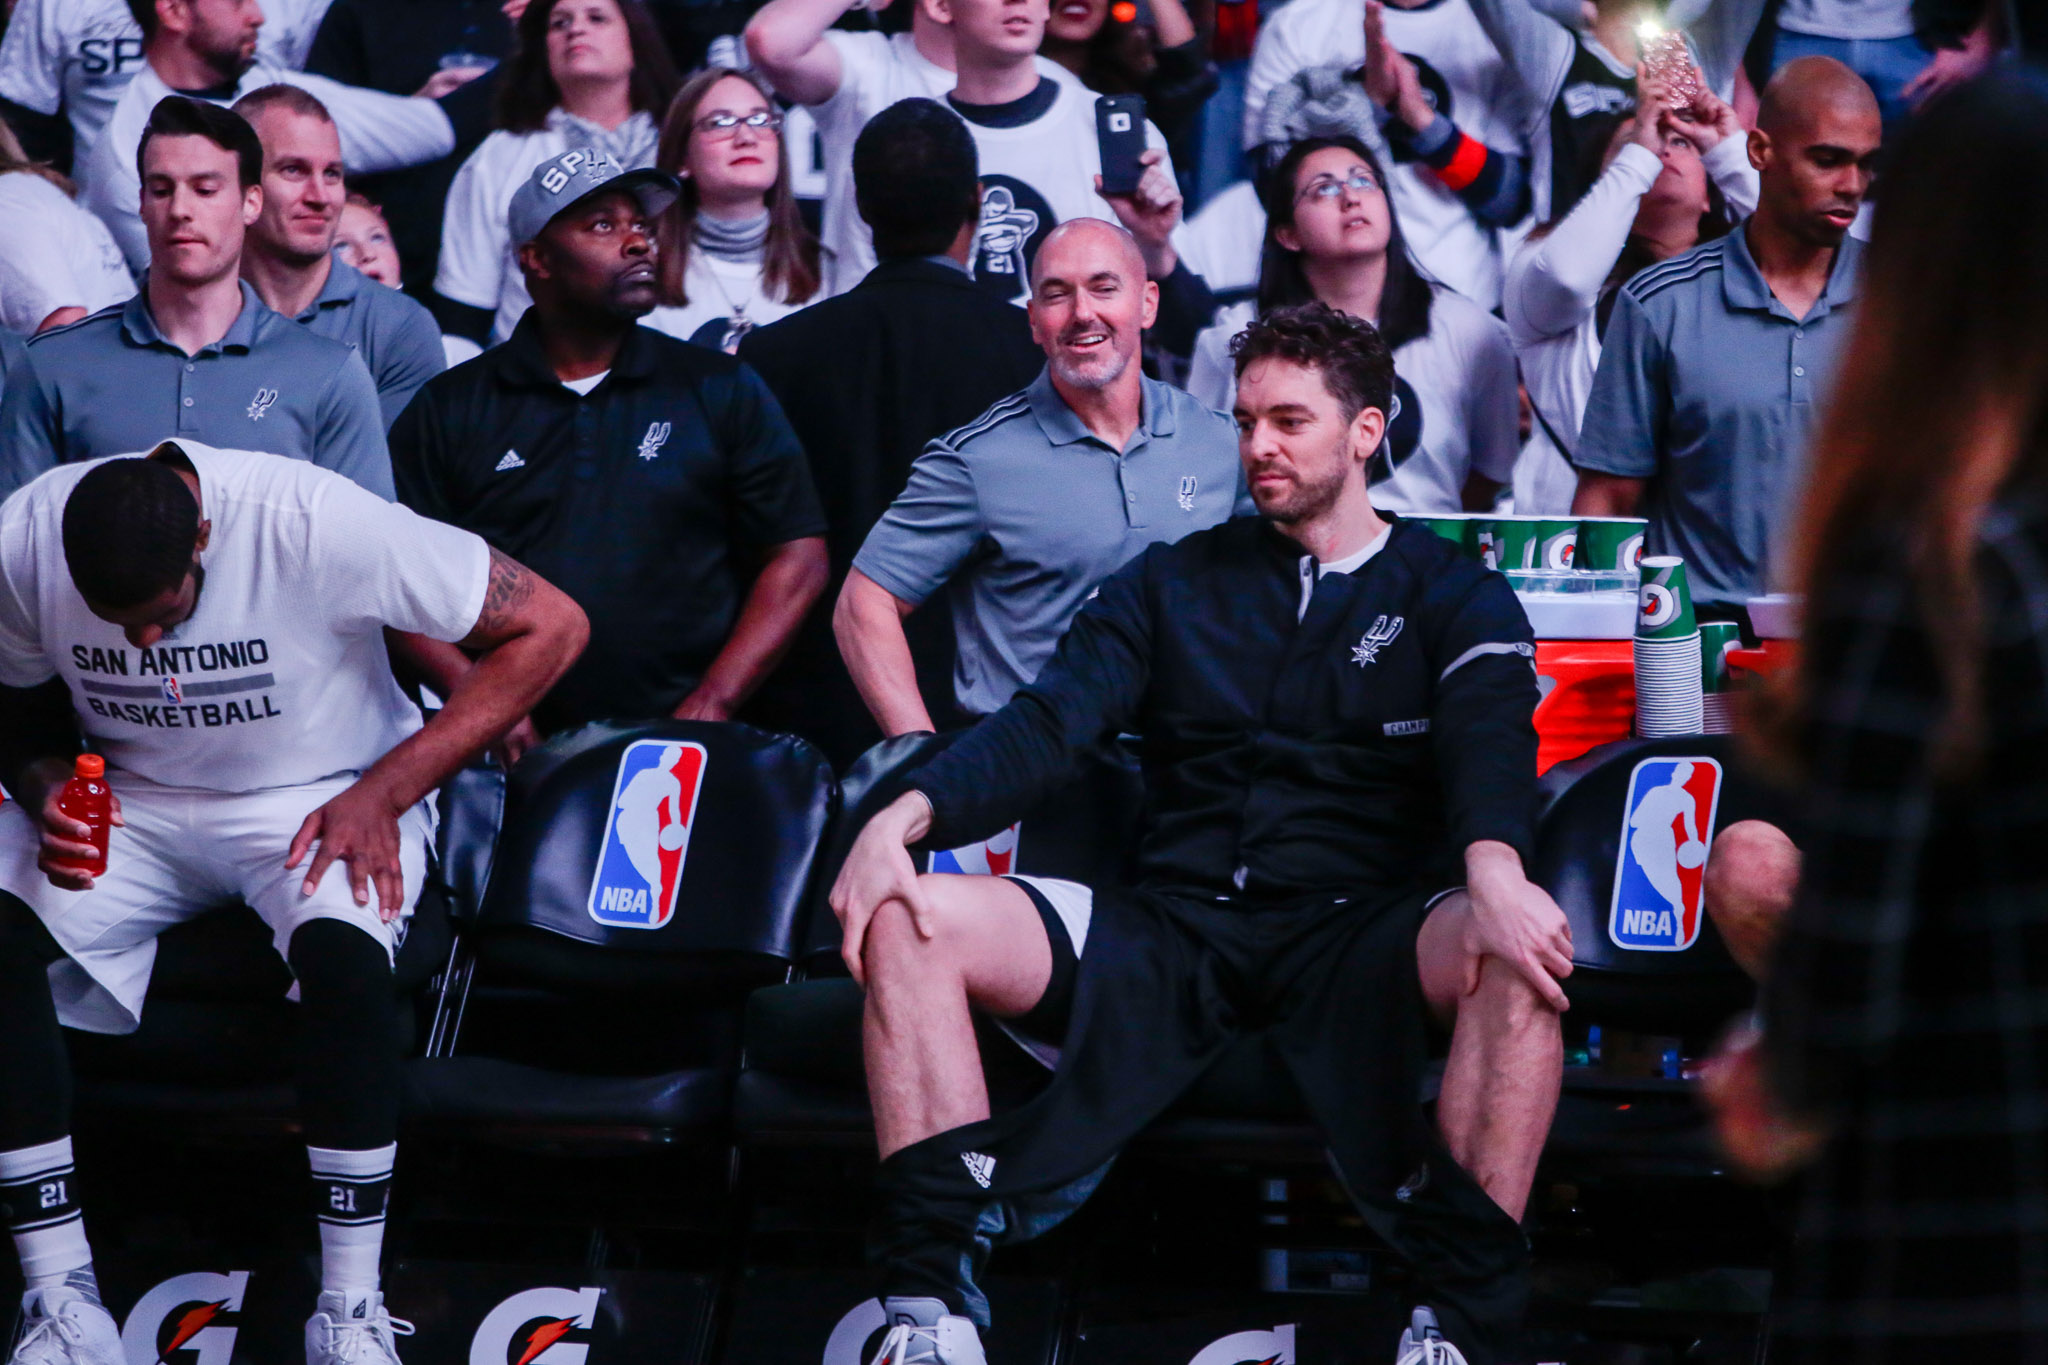 Spurs Center Pau Gasol waits to be called for the starting five introductions.